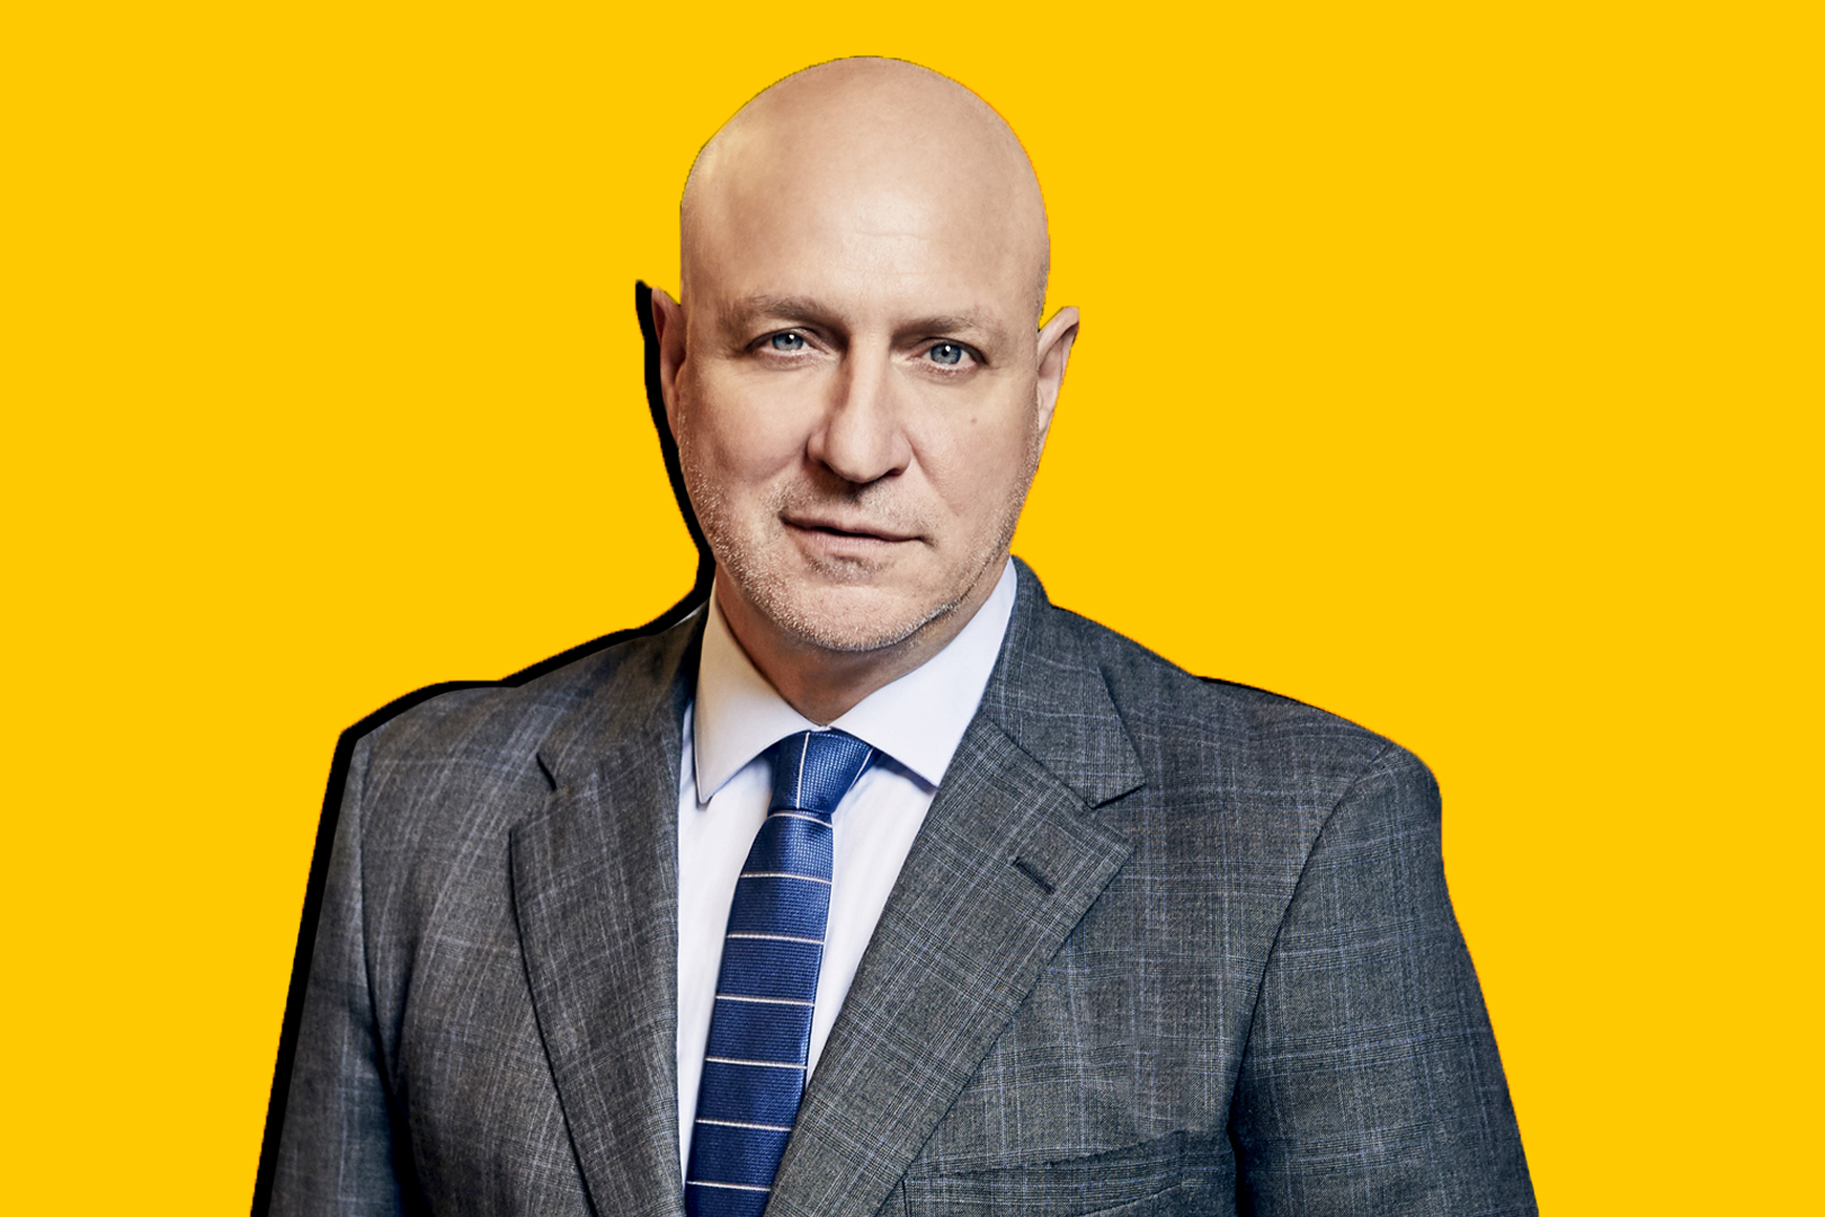 Top Chef Judge Tom Colicchio